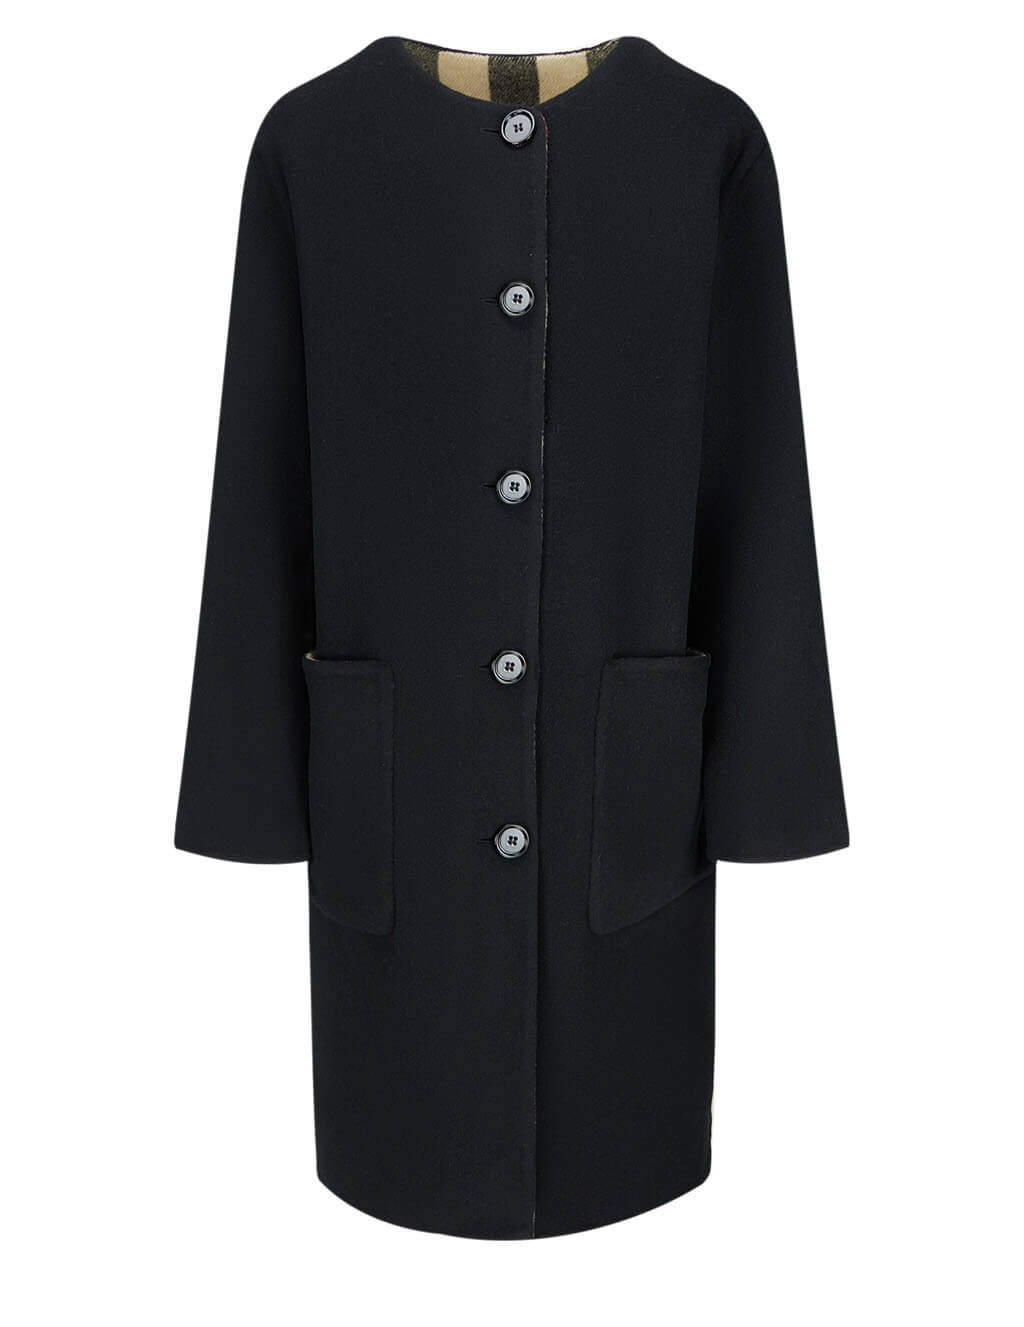 Burberry Women's Black IP Check Reversible Coat 8034516 A1003